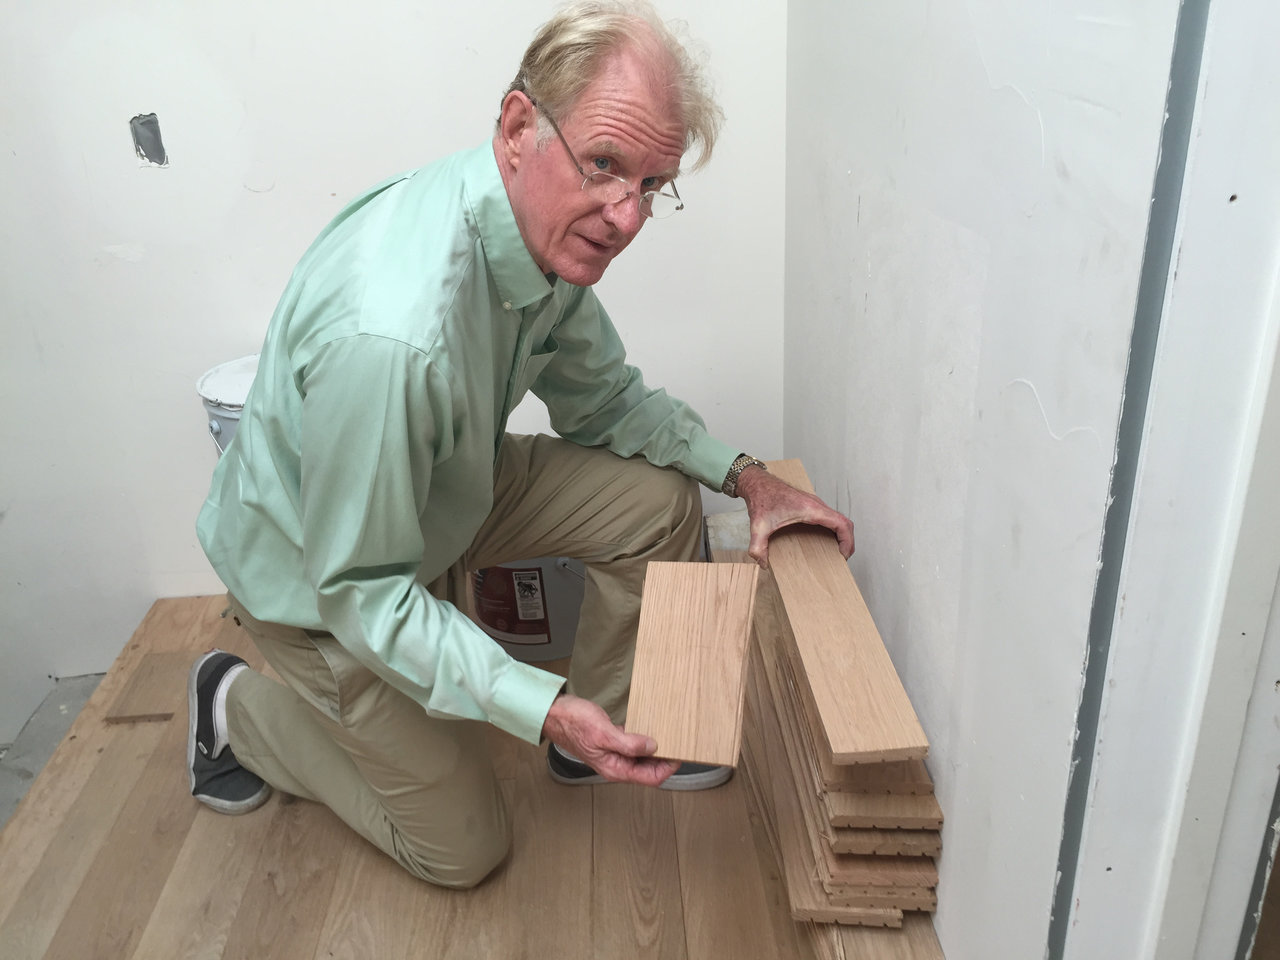 Ed Begley Jr. inspects his oak hardwood flooring, which is 100 percent sourced from old barns and buildings.